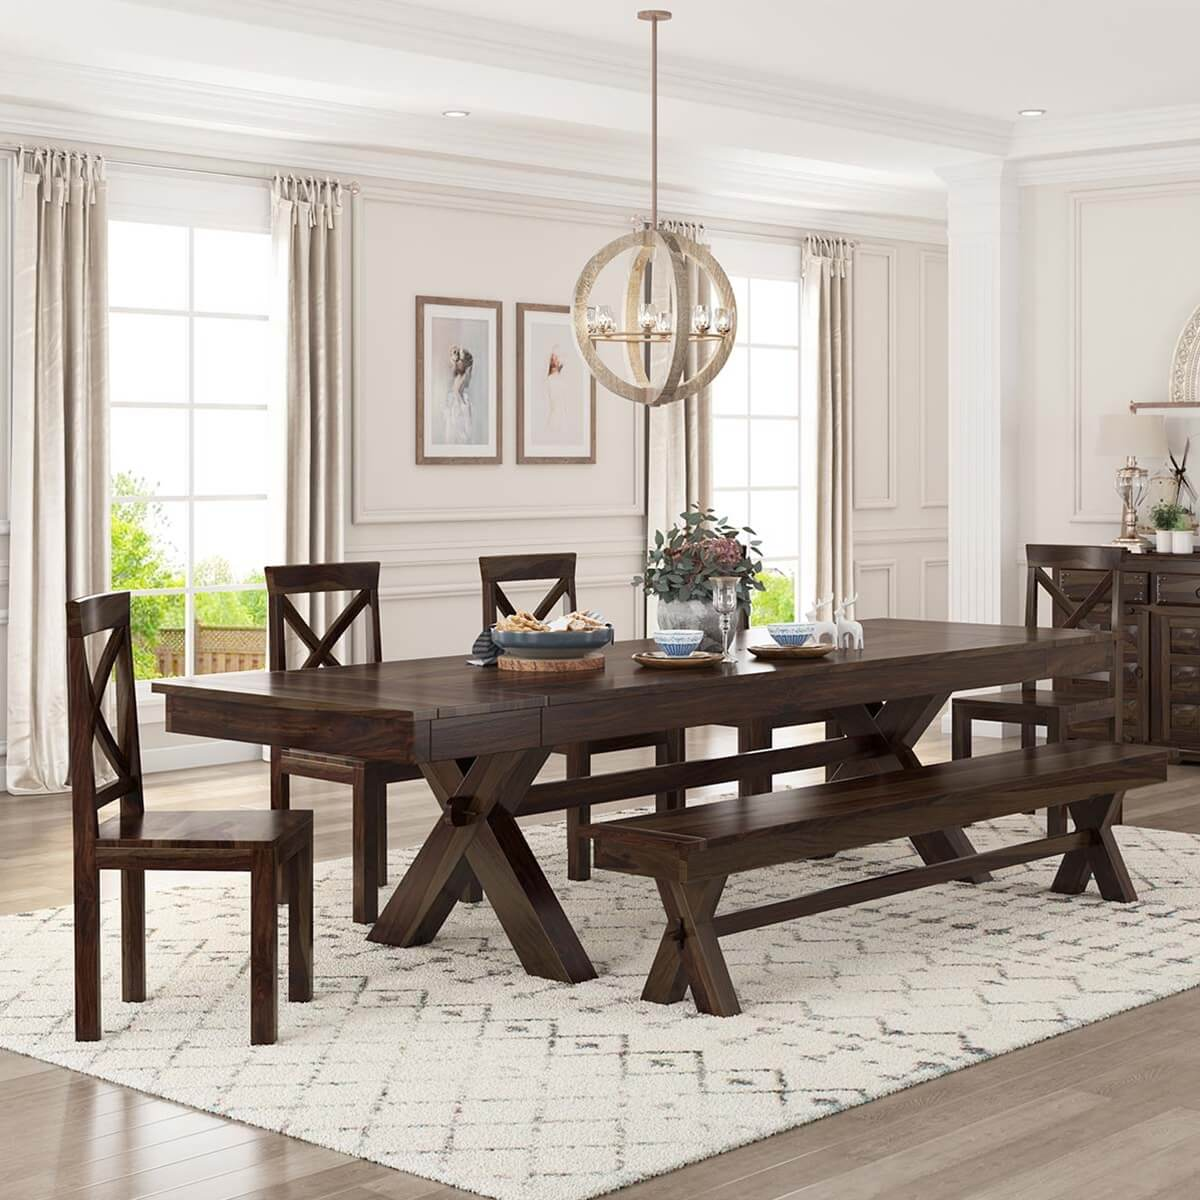 Westside Indoor Picnic Style Dining Table Bench Set with  : 4298 from www.sierralivingconcepts.com size 1200 x 1200 jpeg 87kB